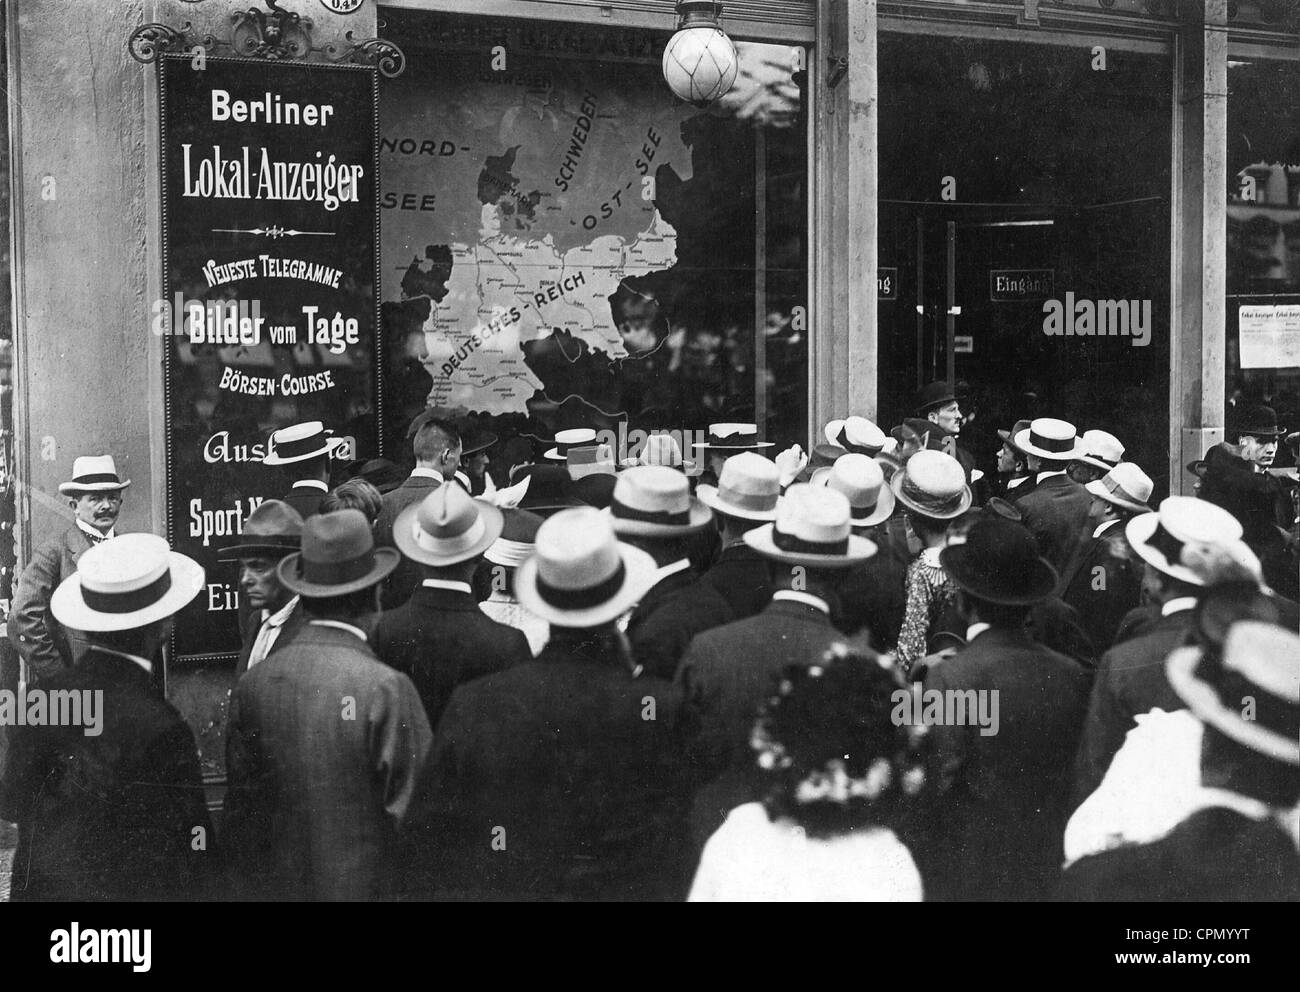 Berliners during the outbreak of war in front of the office of the Berlin Lokalanzeiger, 1914 - Stock Image